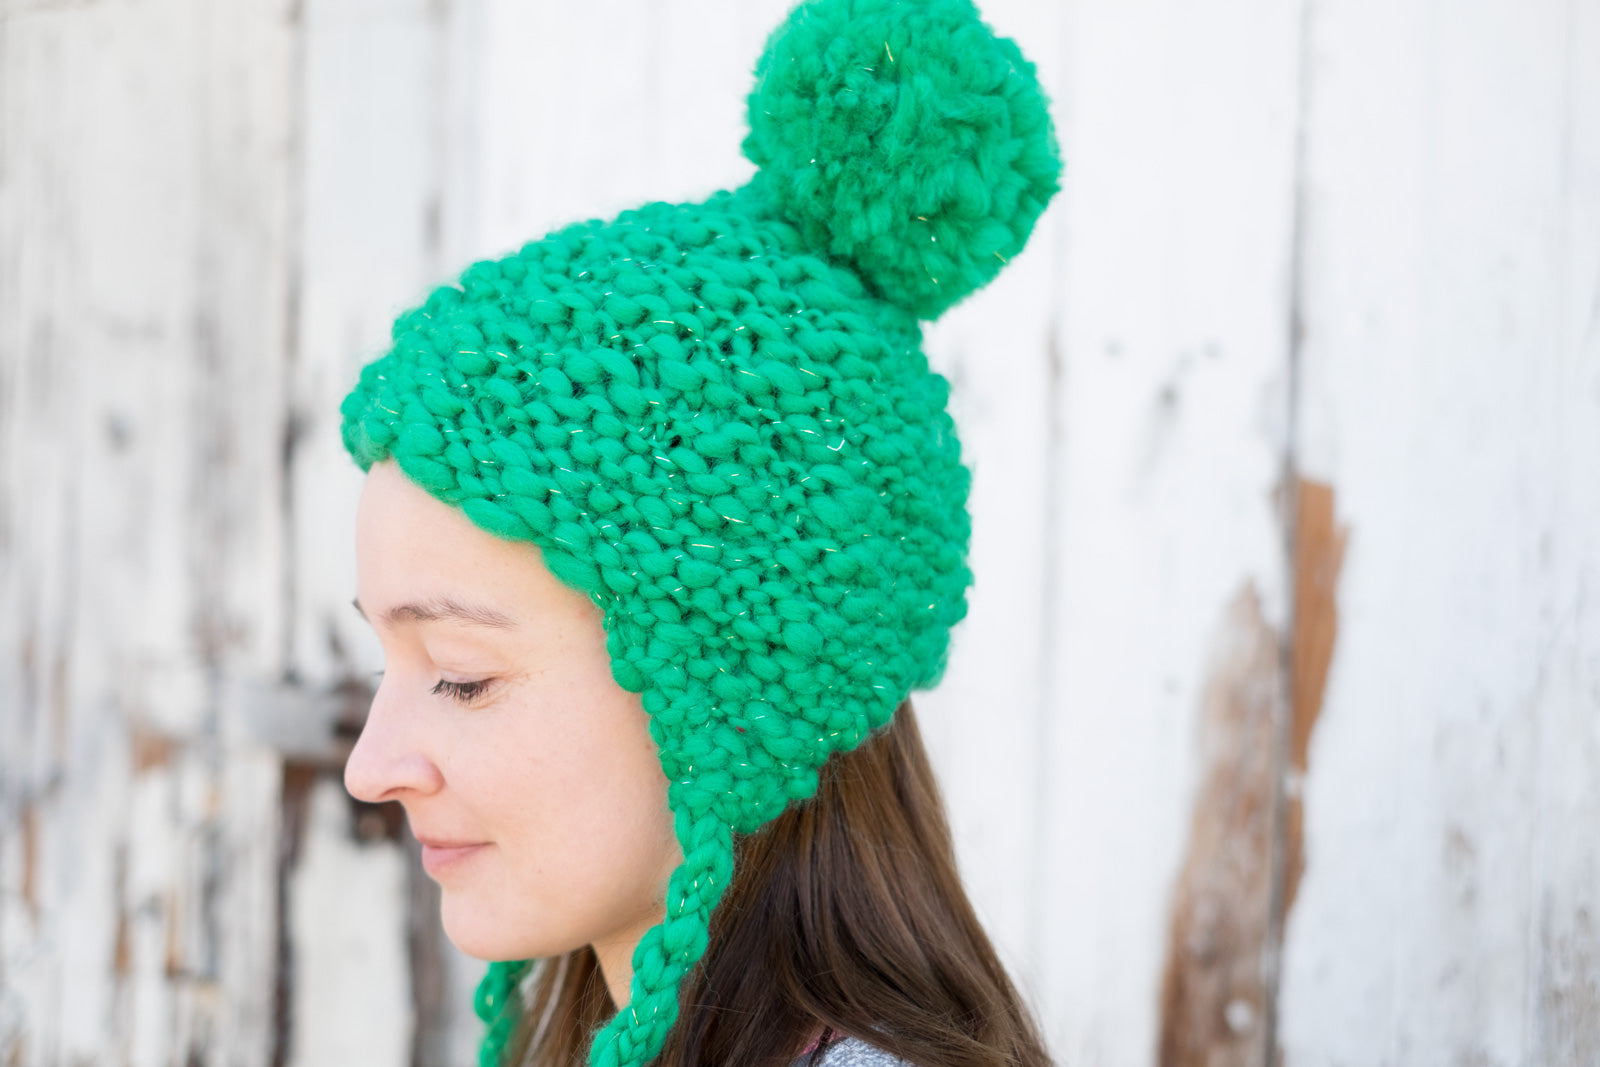 baf0284ae Field Trip Hat + Loome Pom-Pom Tutorial – Fancy Tiger Crafts